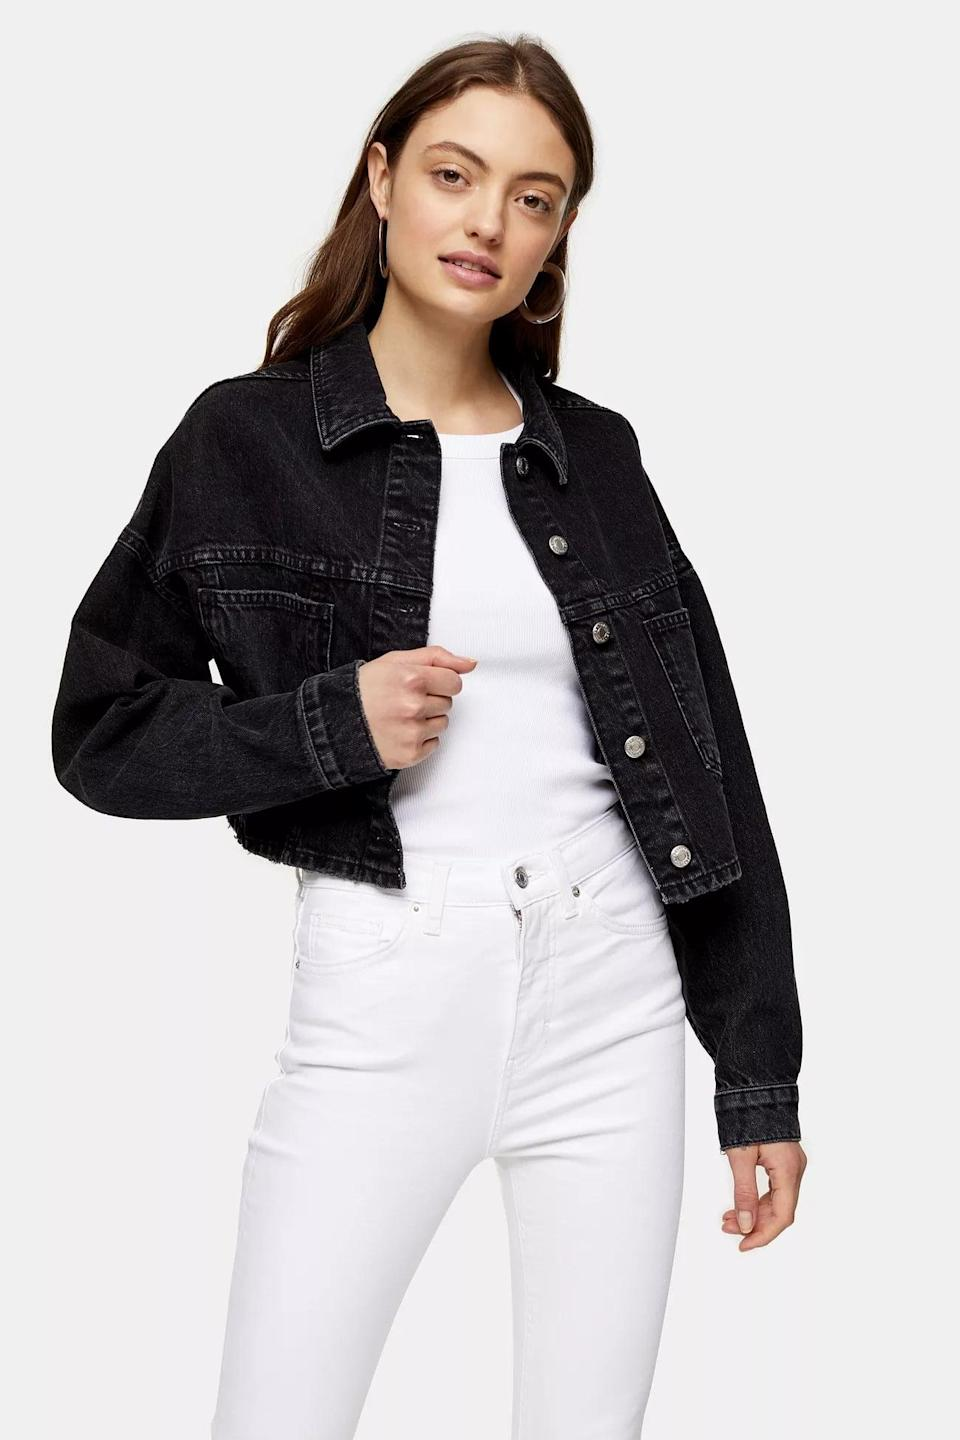 "<p>Chilly summer nights require this lightweight <a href=""https://www.popsugar.com/buy/Topshop-Washed-Black-Cropped-Denim-Jacket-582003?p_name=Topshop%20Washed%20Black%20Cropped%20Denim%20Jacket&retailer=us.topshop.com&pid=582003&price=75&evar1=fab%3Aus&evar9=35329485&evar98=https%3A%2F%2Fwww.popsugar.com%2Ffashion%2Fphoto-gallery%2F35329485%2Fimage%2F47550209%2FTopshop-Washed-Black-Cropped-Denim-Jacket&list1=shopping%2Cdenim%2Csummer%20fashion%2Cfashion%20shopping&prop13=mobile&pdata=1"" class=""link rapid-noclick-resp"" rel=""nofollow noopener"" target=""_blank"" data-ylk=""slk:Topshop Washed Black Cropped Denim Jacket"">Topshop Washed Black Cropped Denim Jacket</a> ($75).</p>"